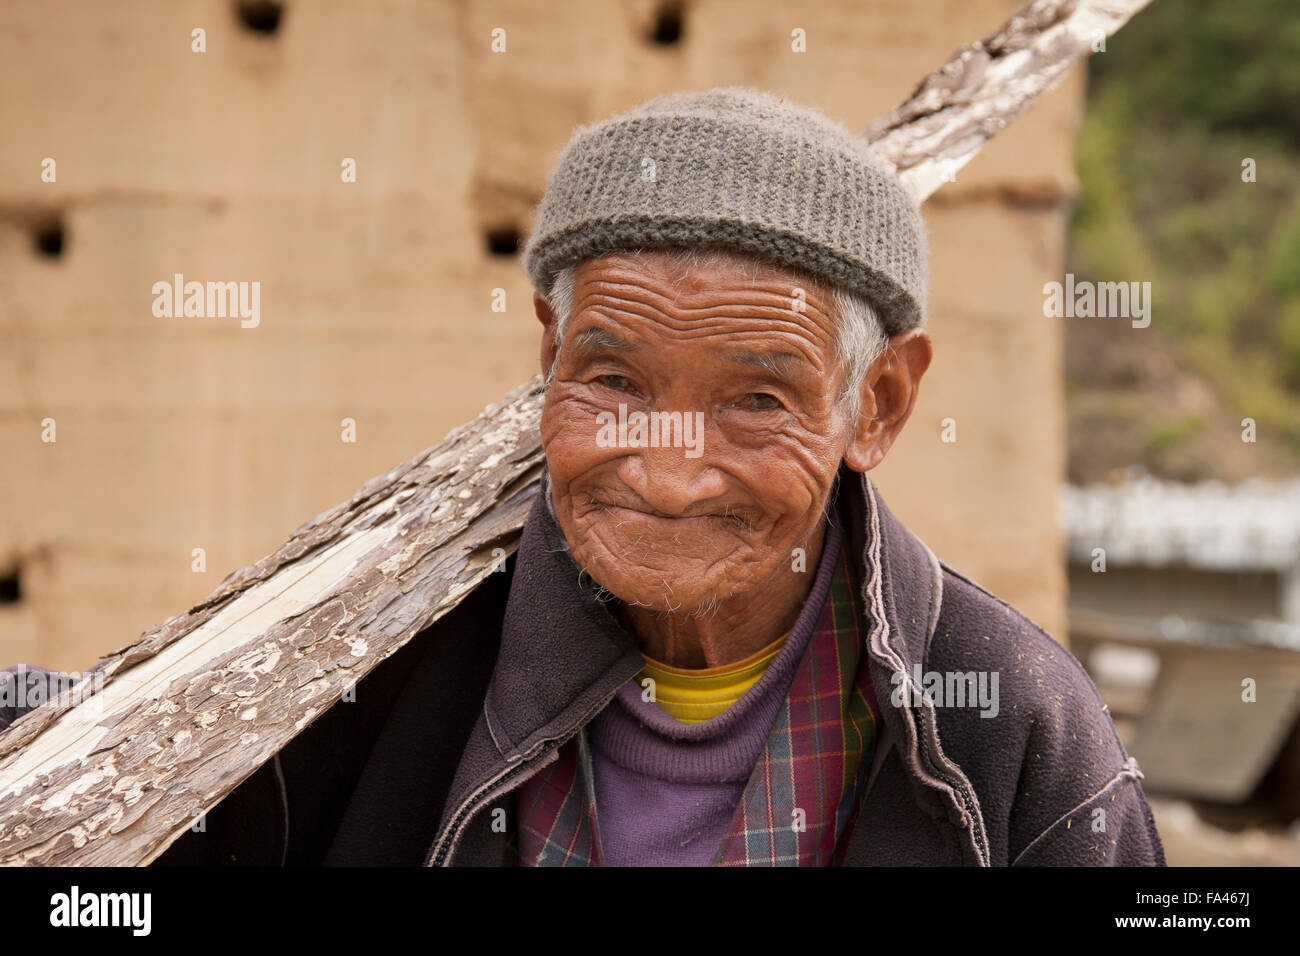 Old man in the Haa valley in Bhutan - Stock Image